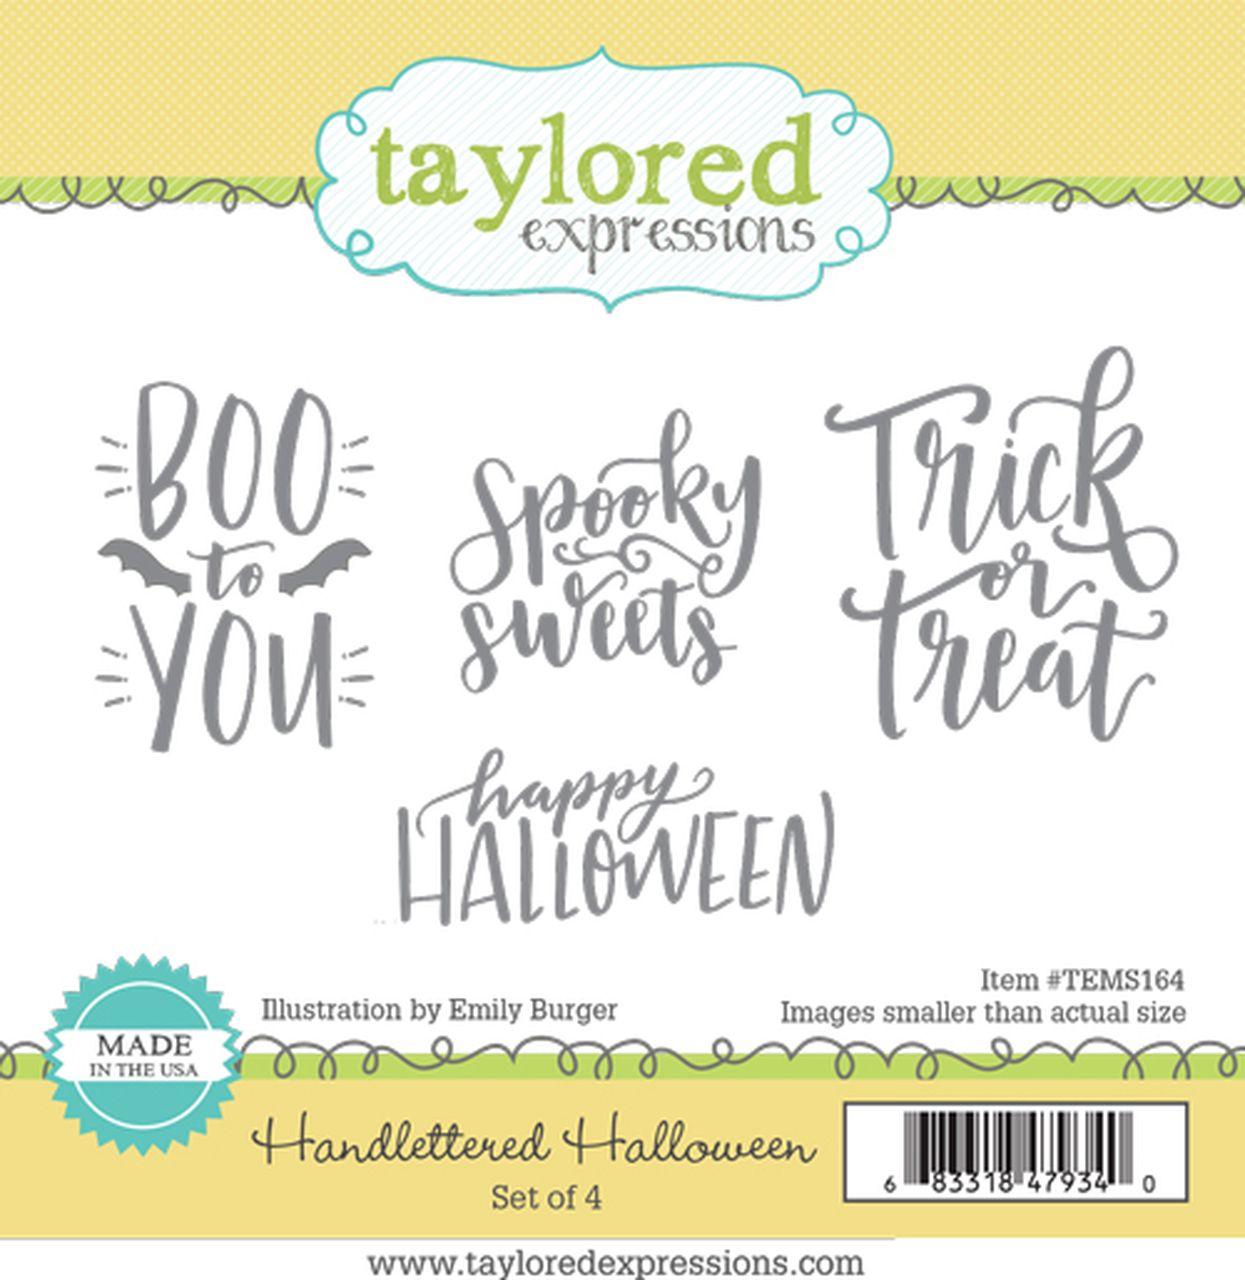 Taylored Expression - Handlettered Halloween